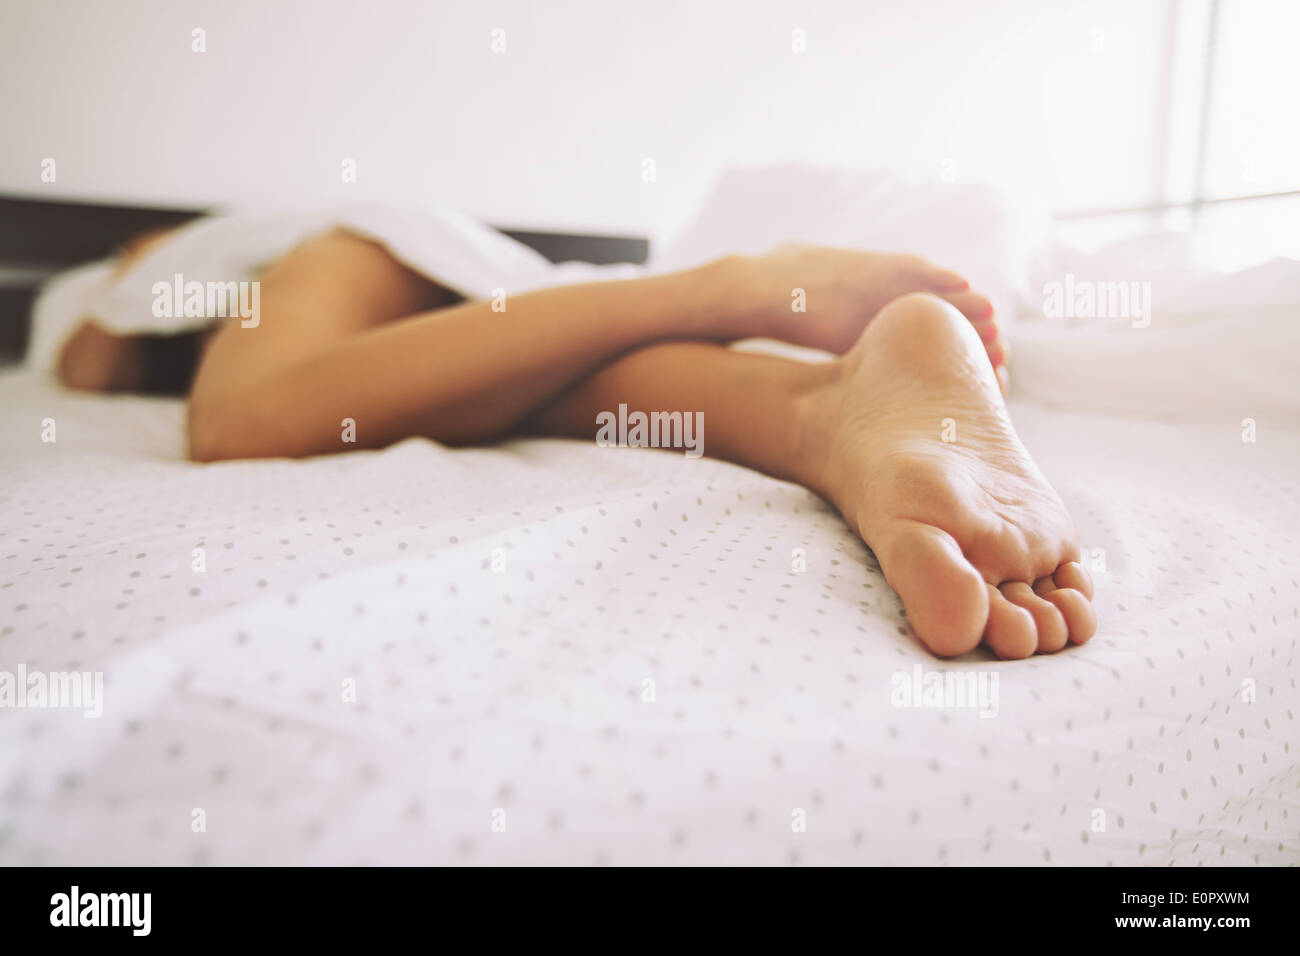 Young female sleeping in bed at home with focus on legs. Feet of woman lying on bed. - Stock Image